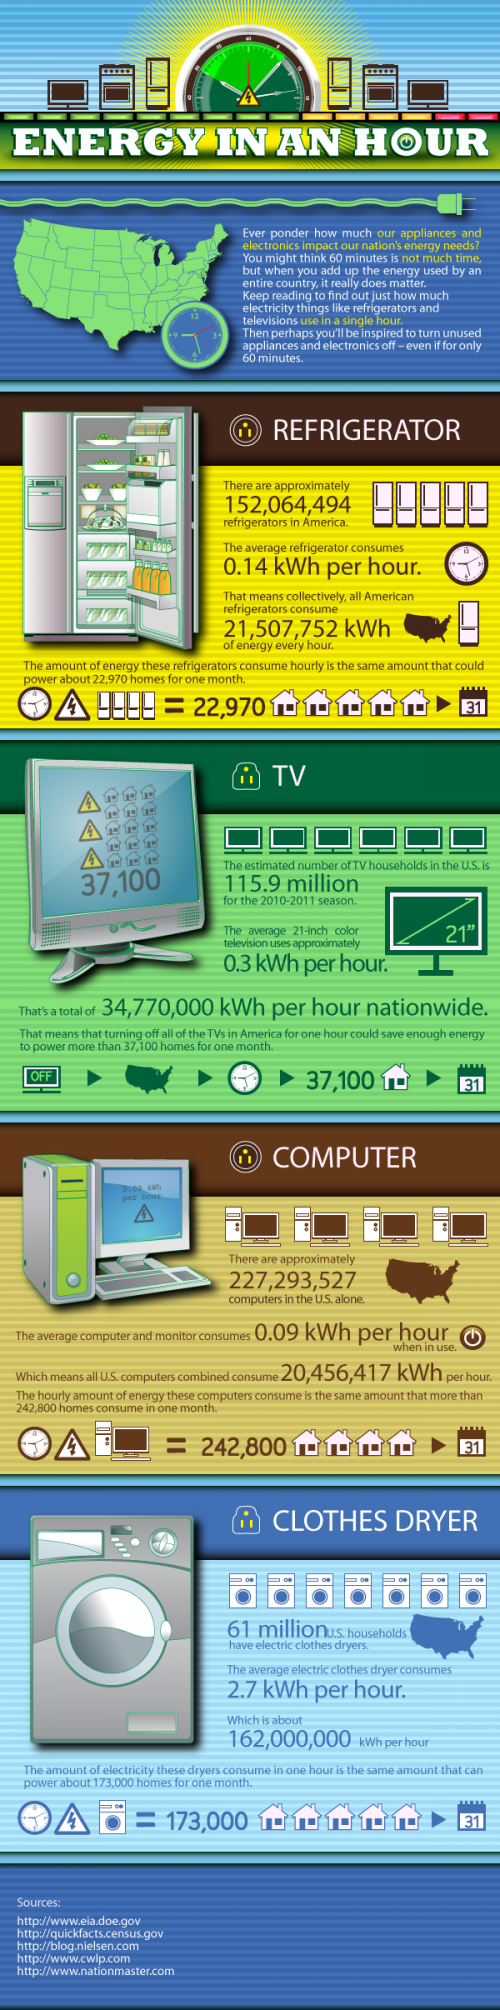 appliances and home used of energy in USA homes